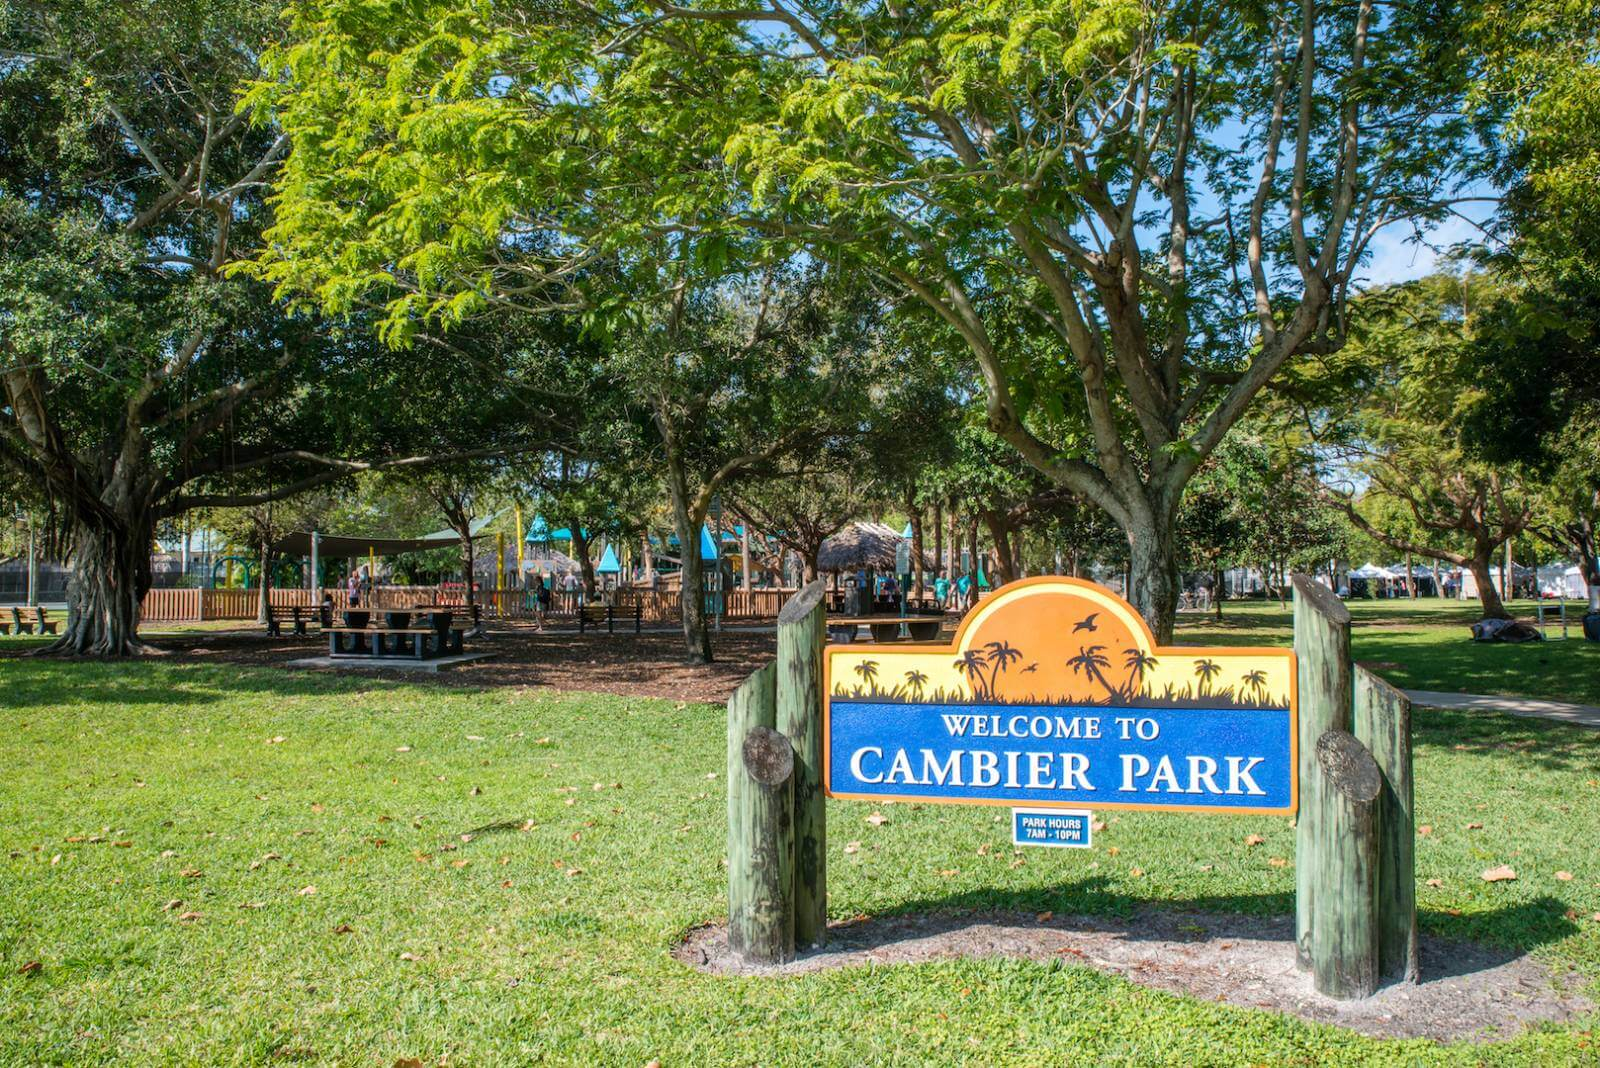 Cambier Park Naples, Florida things to do. Photo by Jennifer Brinkman.